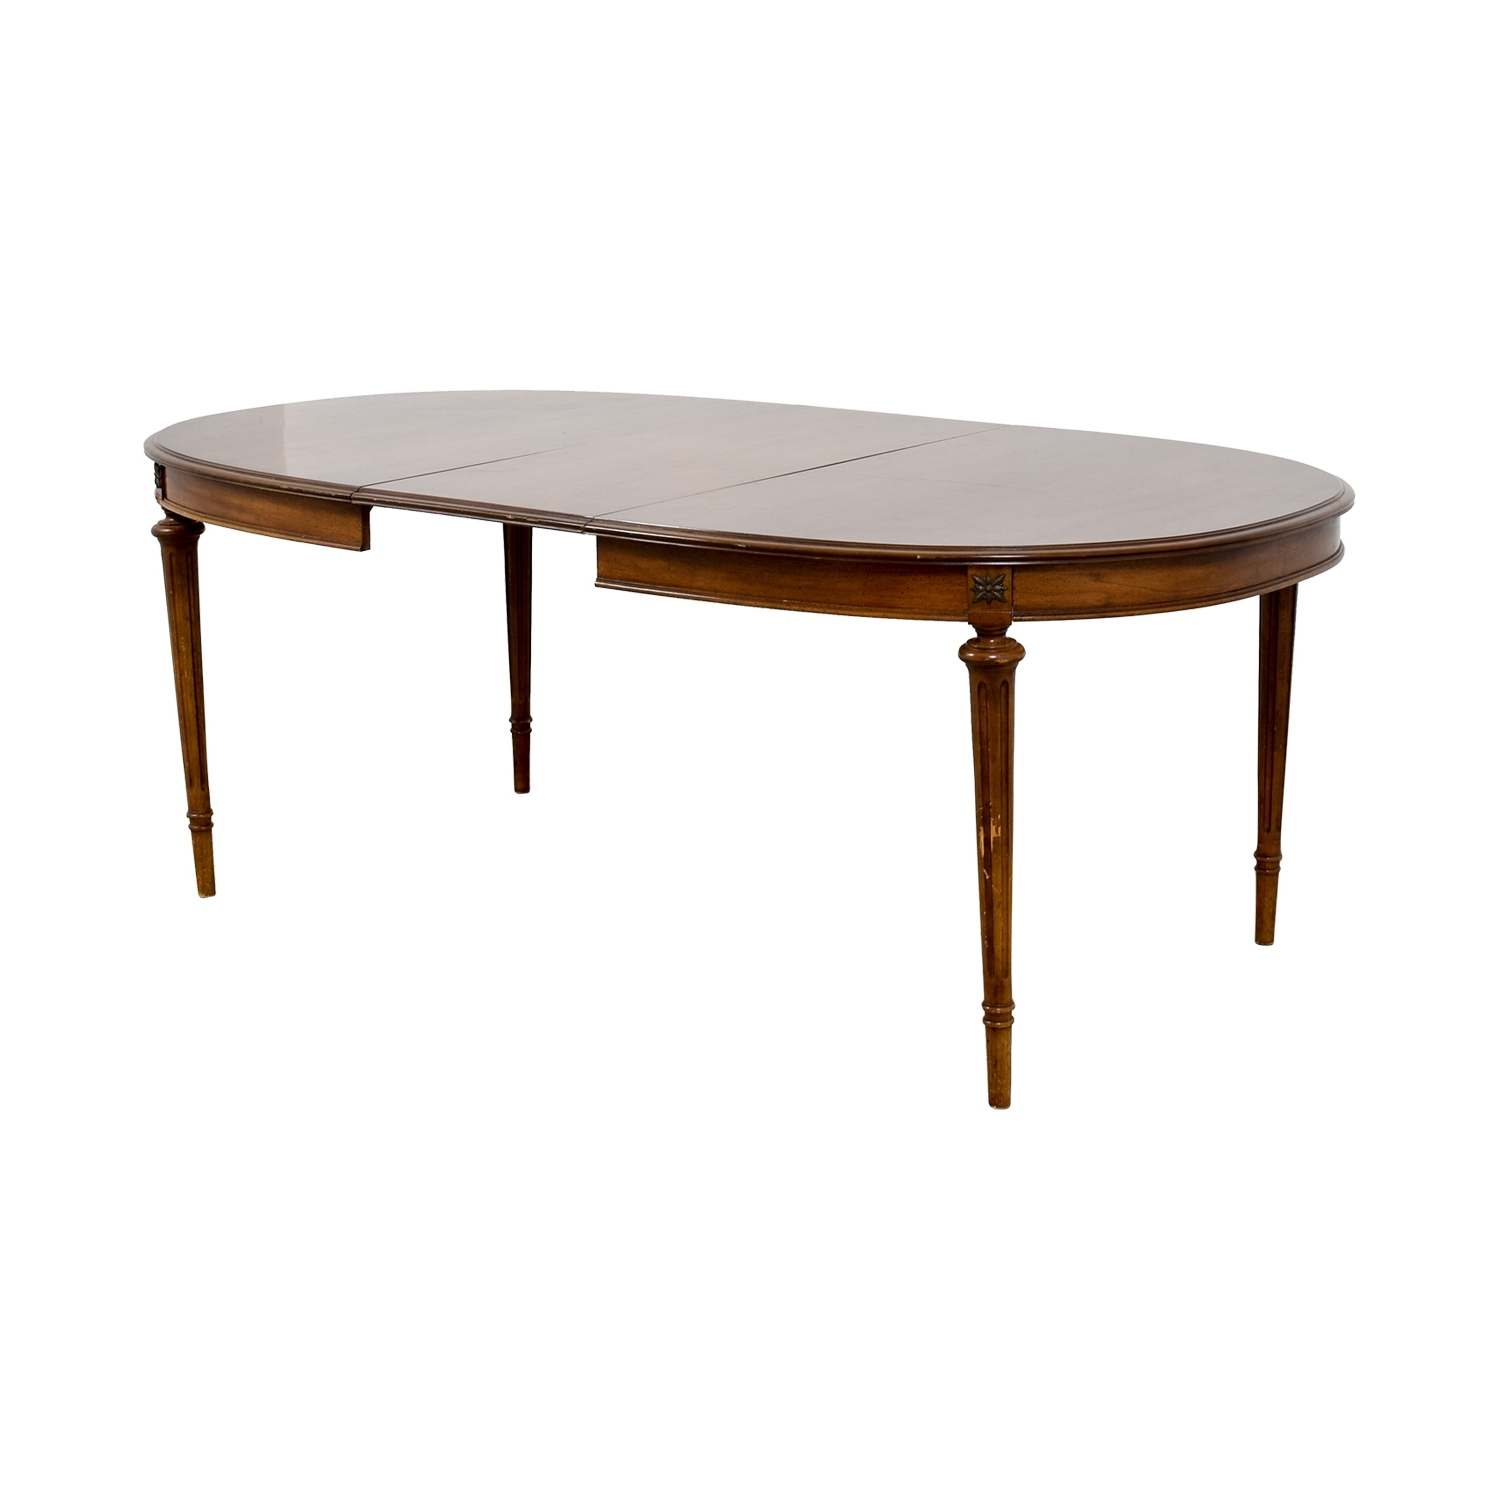 [%64% Off – Wood Extendable Oval Dining Table / Tables In Current Oval Dining Tables For Sale Oval Dining Tables For Sale In Well Known 64% Off – Wood Extendable Oval Dining Table / Tables Recent Oval Dining Tables For Sale Pertaining To 64% Off – Wood Extendable Oval Dining Table / Tables Trendy 64% Off – Wood Extendable Oval Dining Table / Tables With Regard To Oval Dining Tables For Sale%] (View 10 of 25)